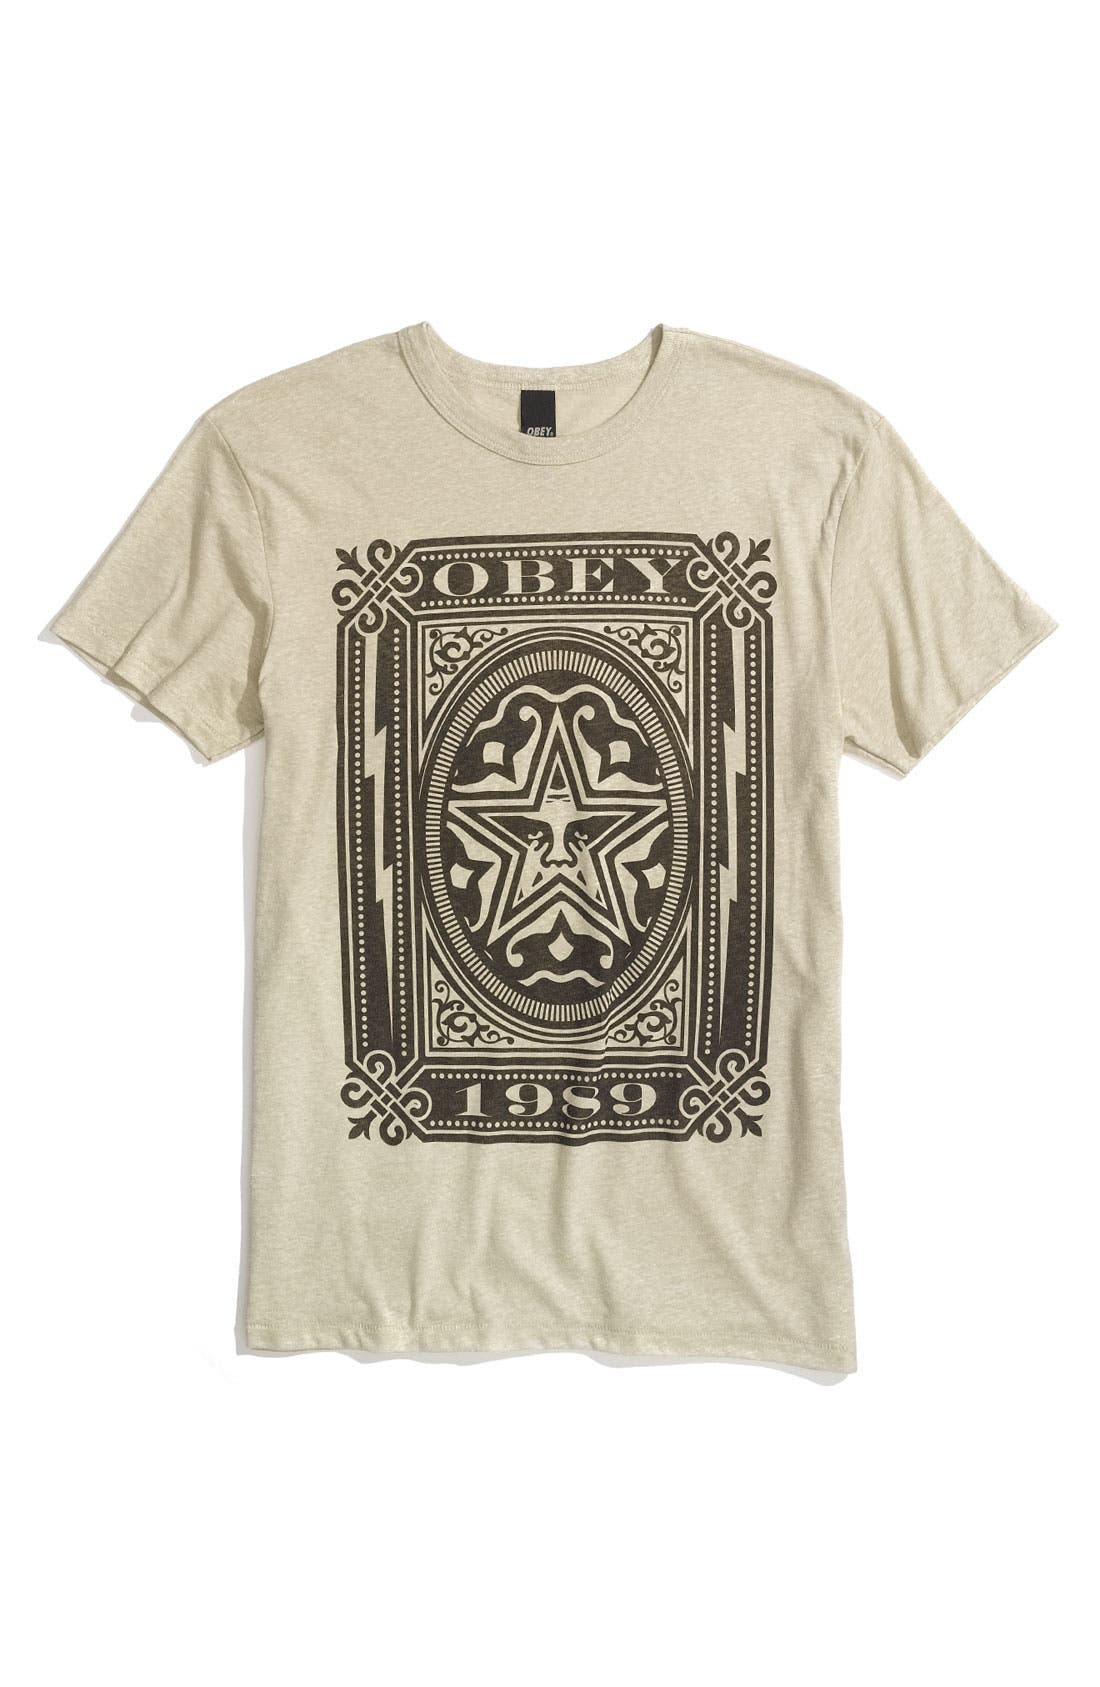 Alternate Image 1 Selected - Obey 'Imperial' Screenprint T-Shirt